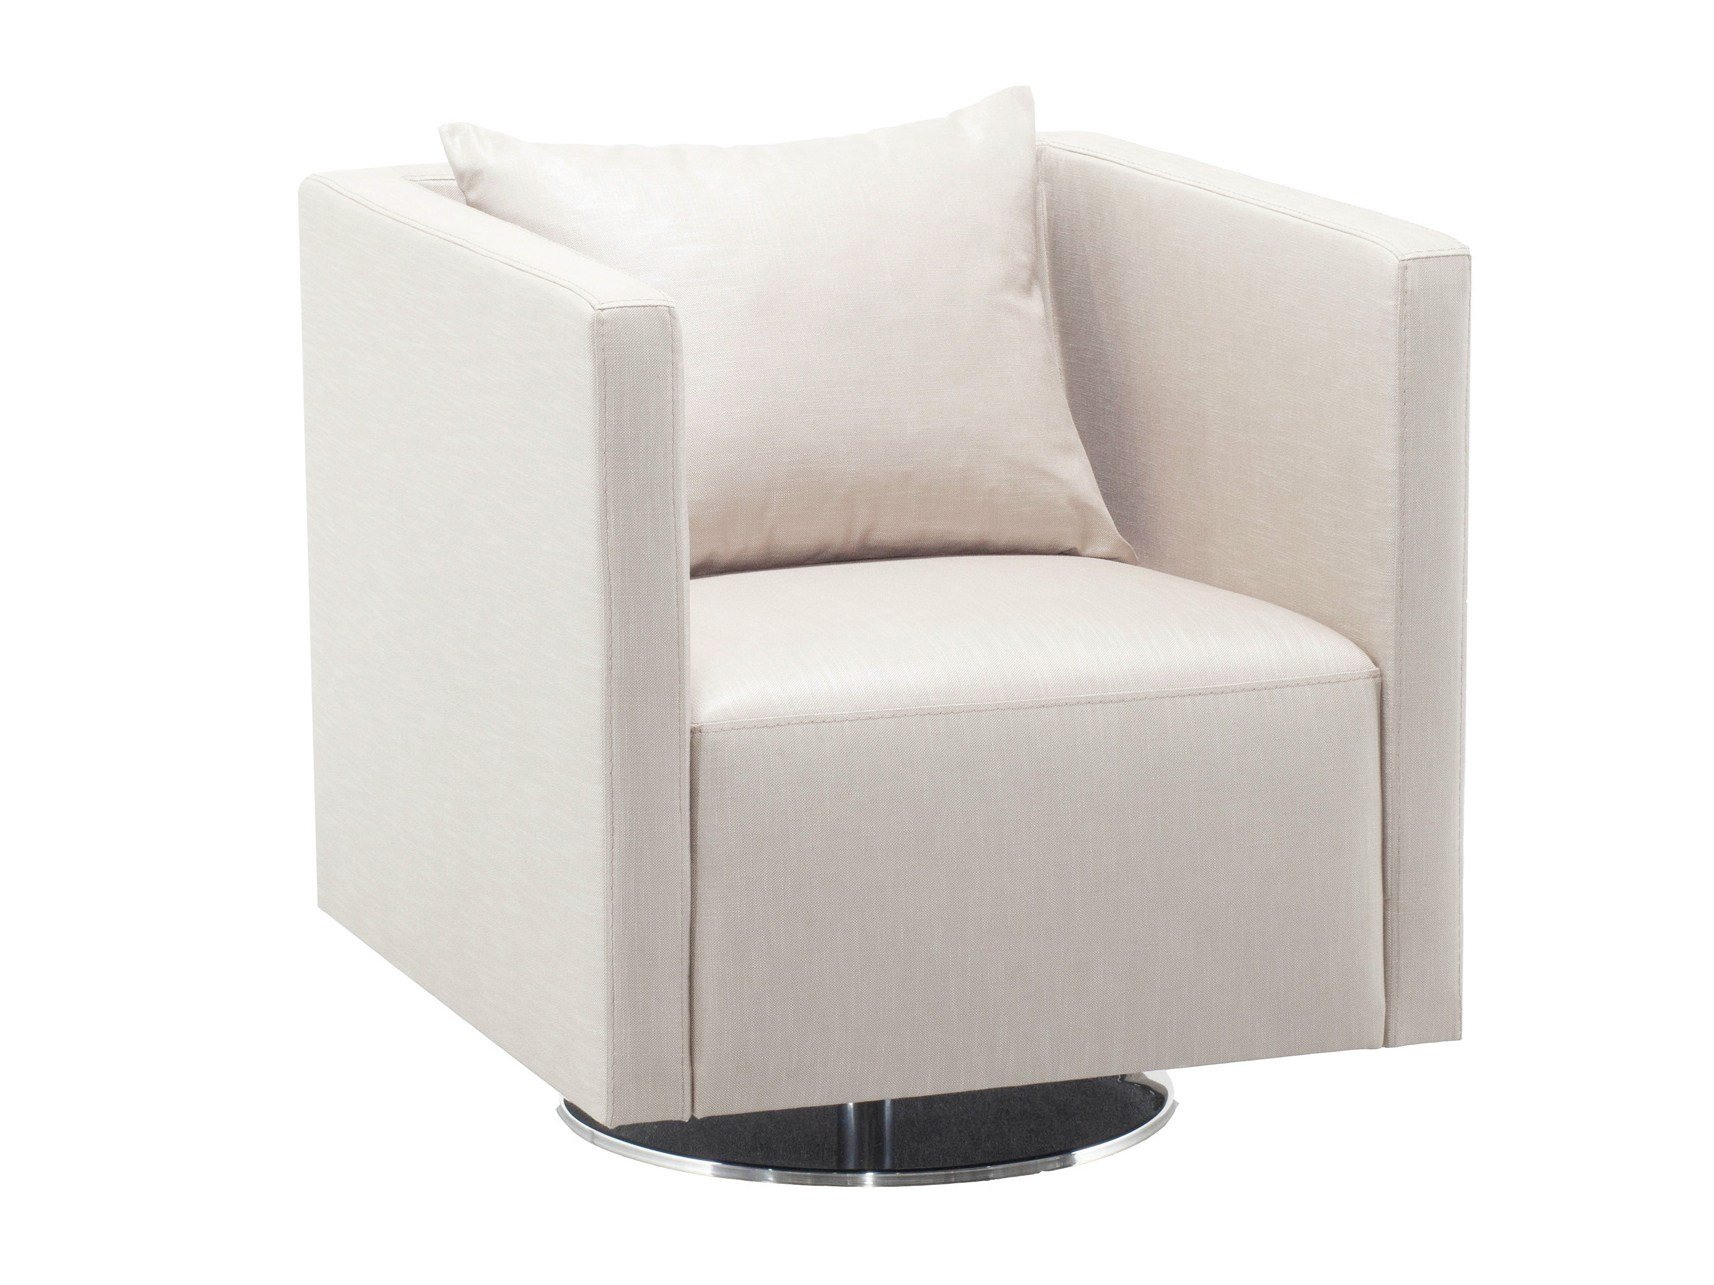 Swivel upholstered fabric armchair ALAMBRA by AZEA design ...